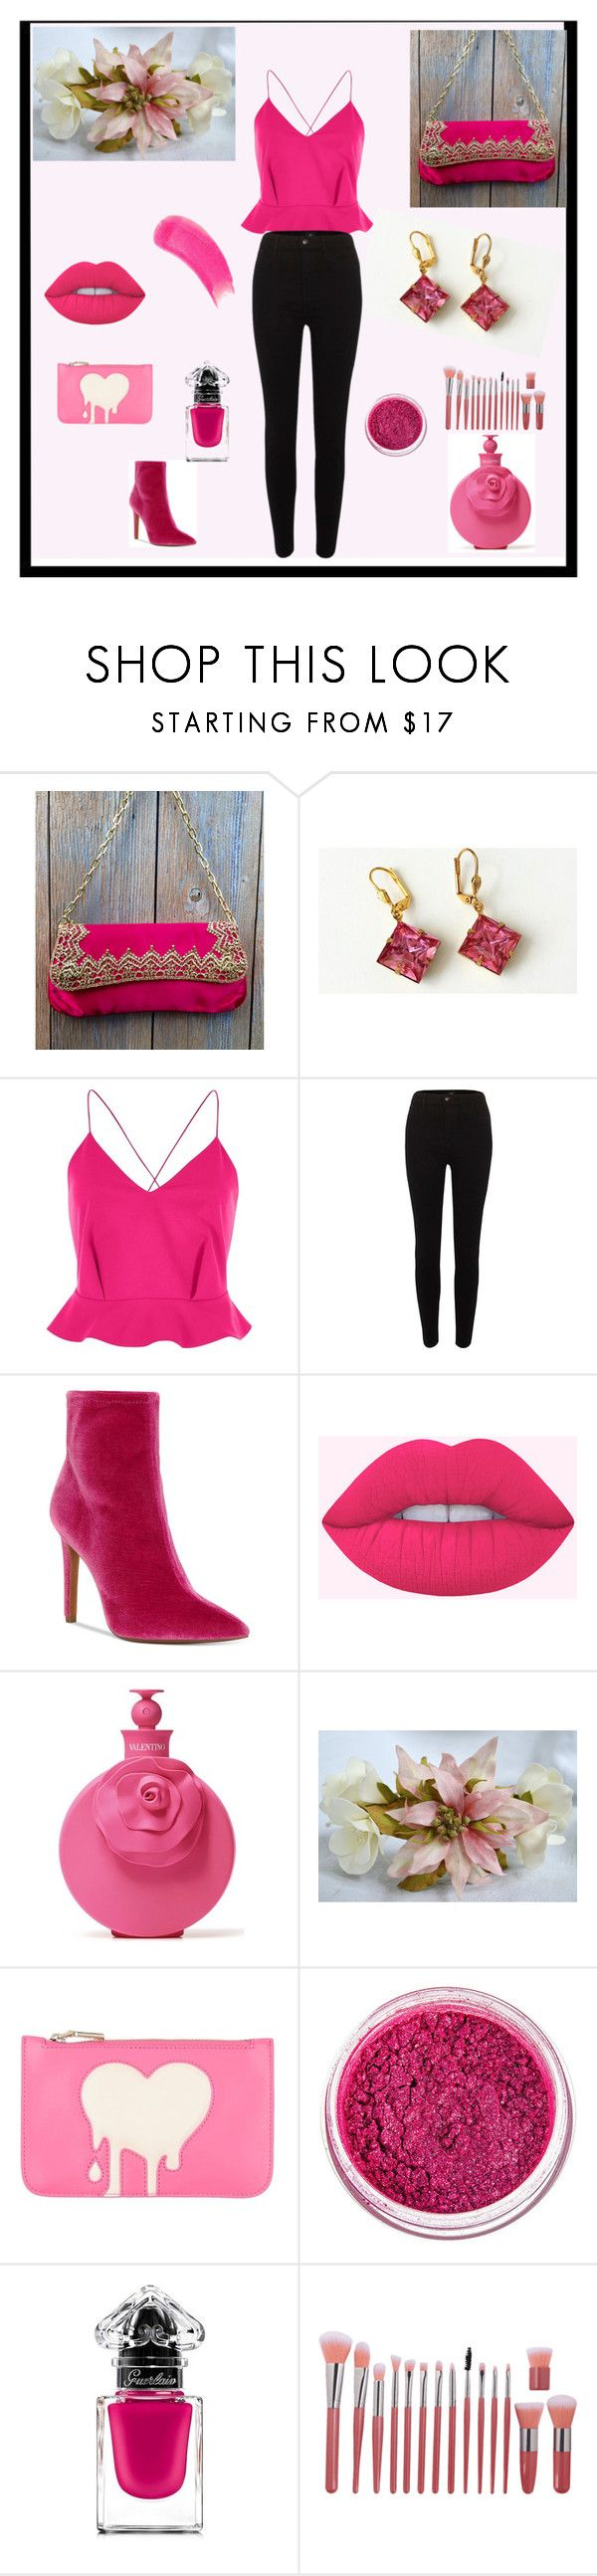 """Just PINK"" by artistinjewelry ❤ liked on Polyvore featuring River Island, Jessica Simpson, Valentino, Love Moschino, Manic Panic NYC, Guerlain, Sisley and vintage"